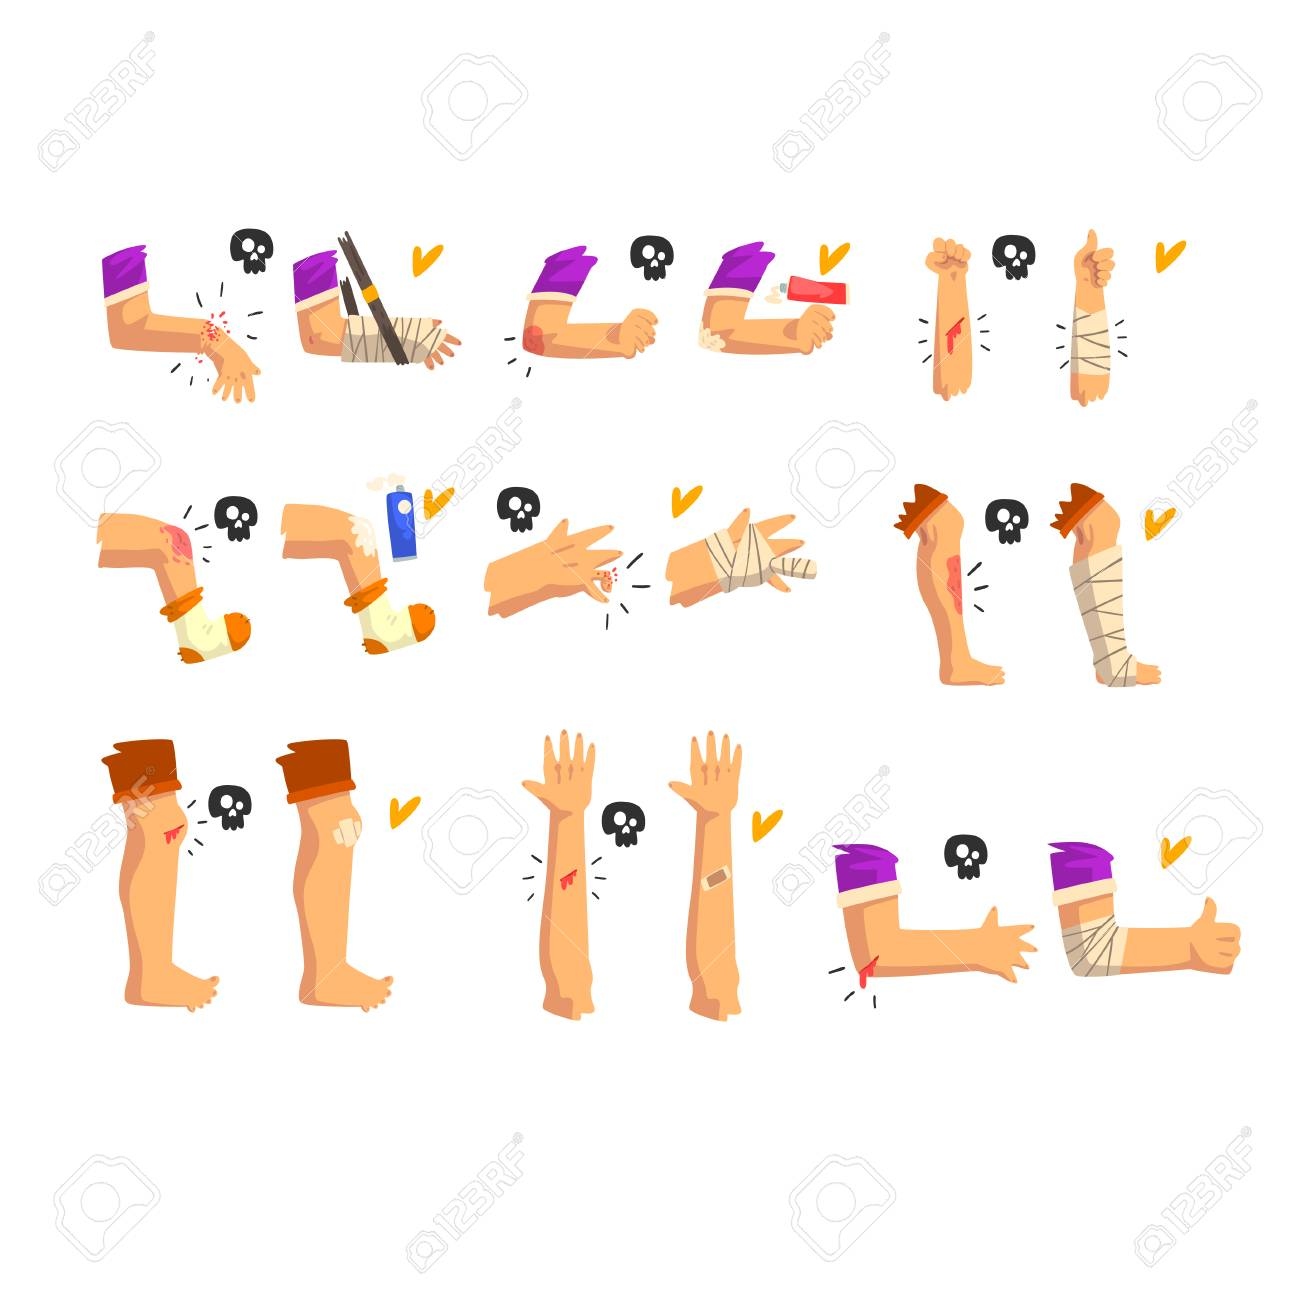 Damaged body parts set, injuries and fractures of the arms and legs, first aid and treatment vector Illustration isolated on a white background. - 126540522